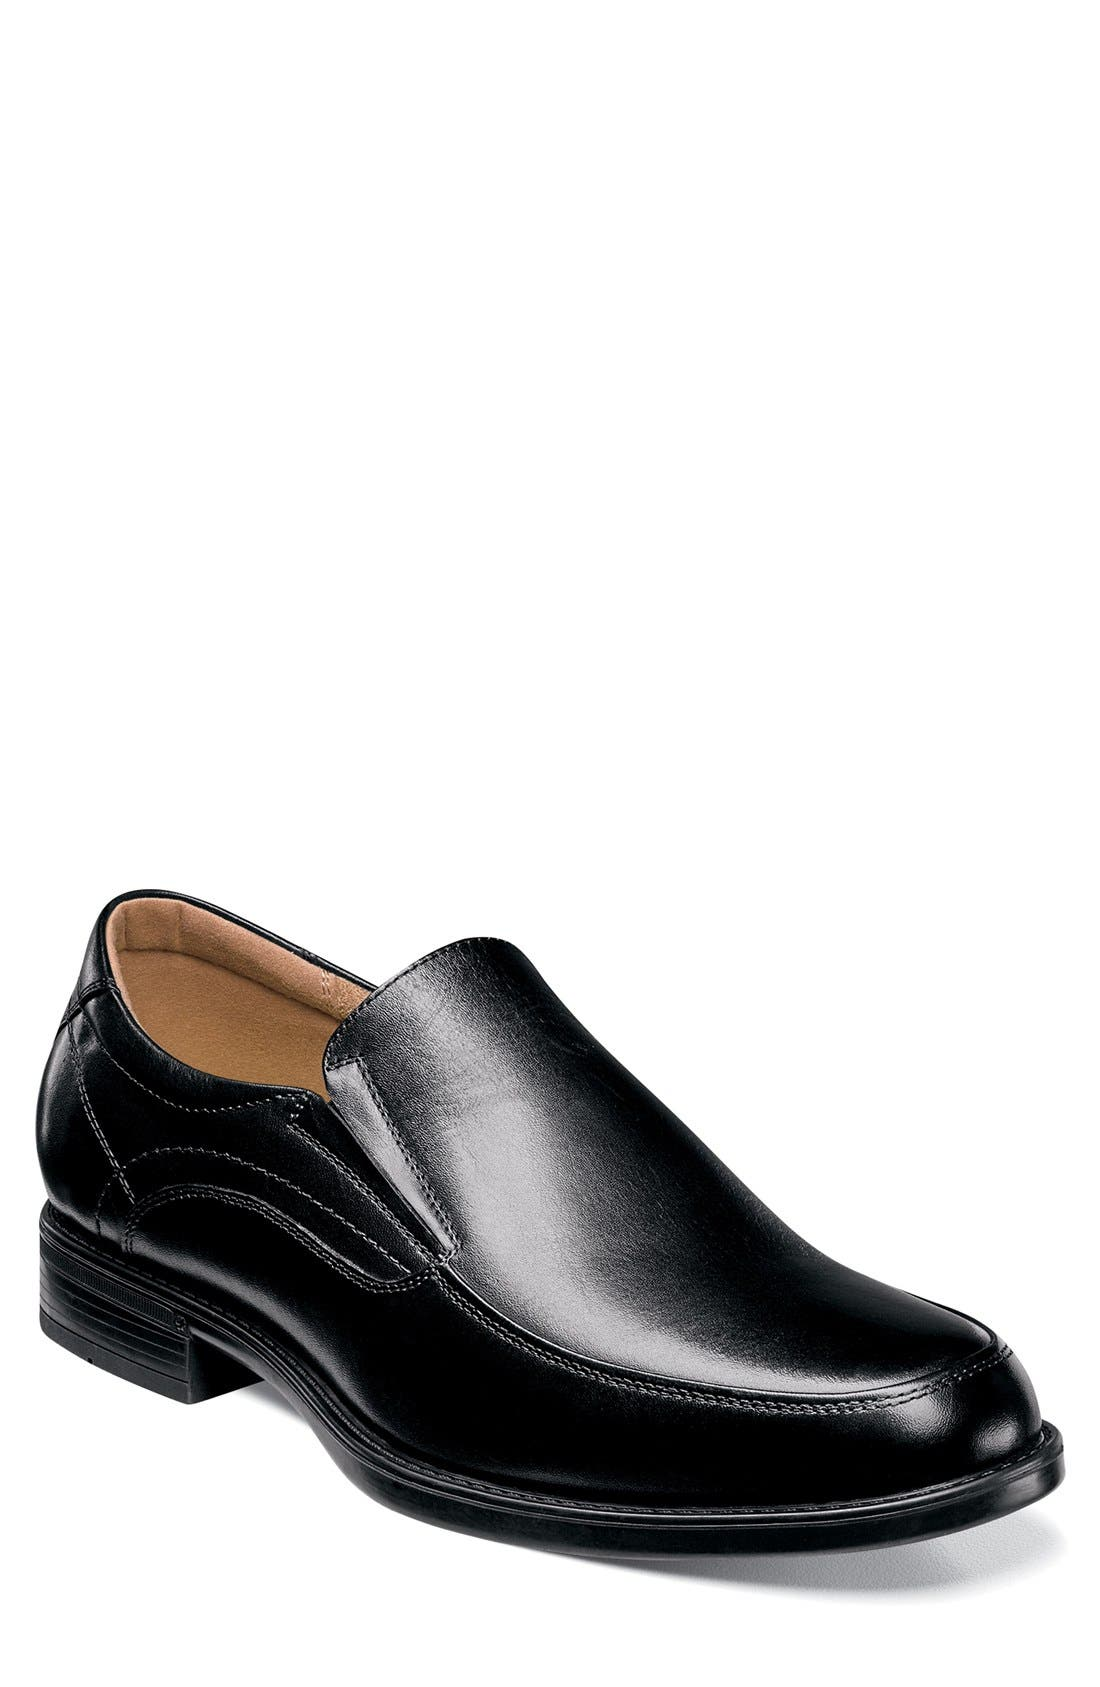 'Midtown' Slip-On,                             Main thumbnail 1, color,                             Black Leather